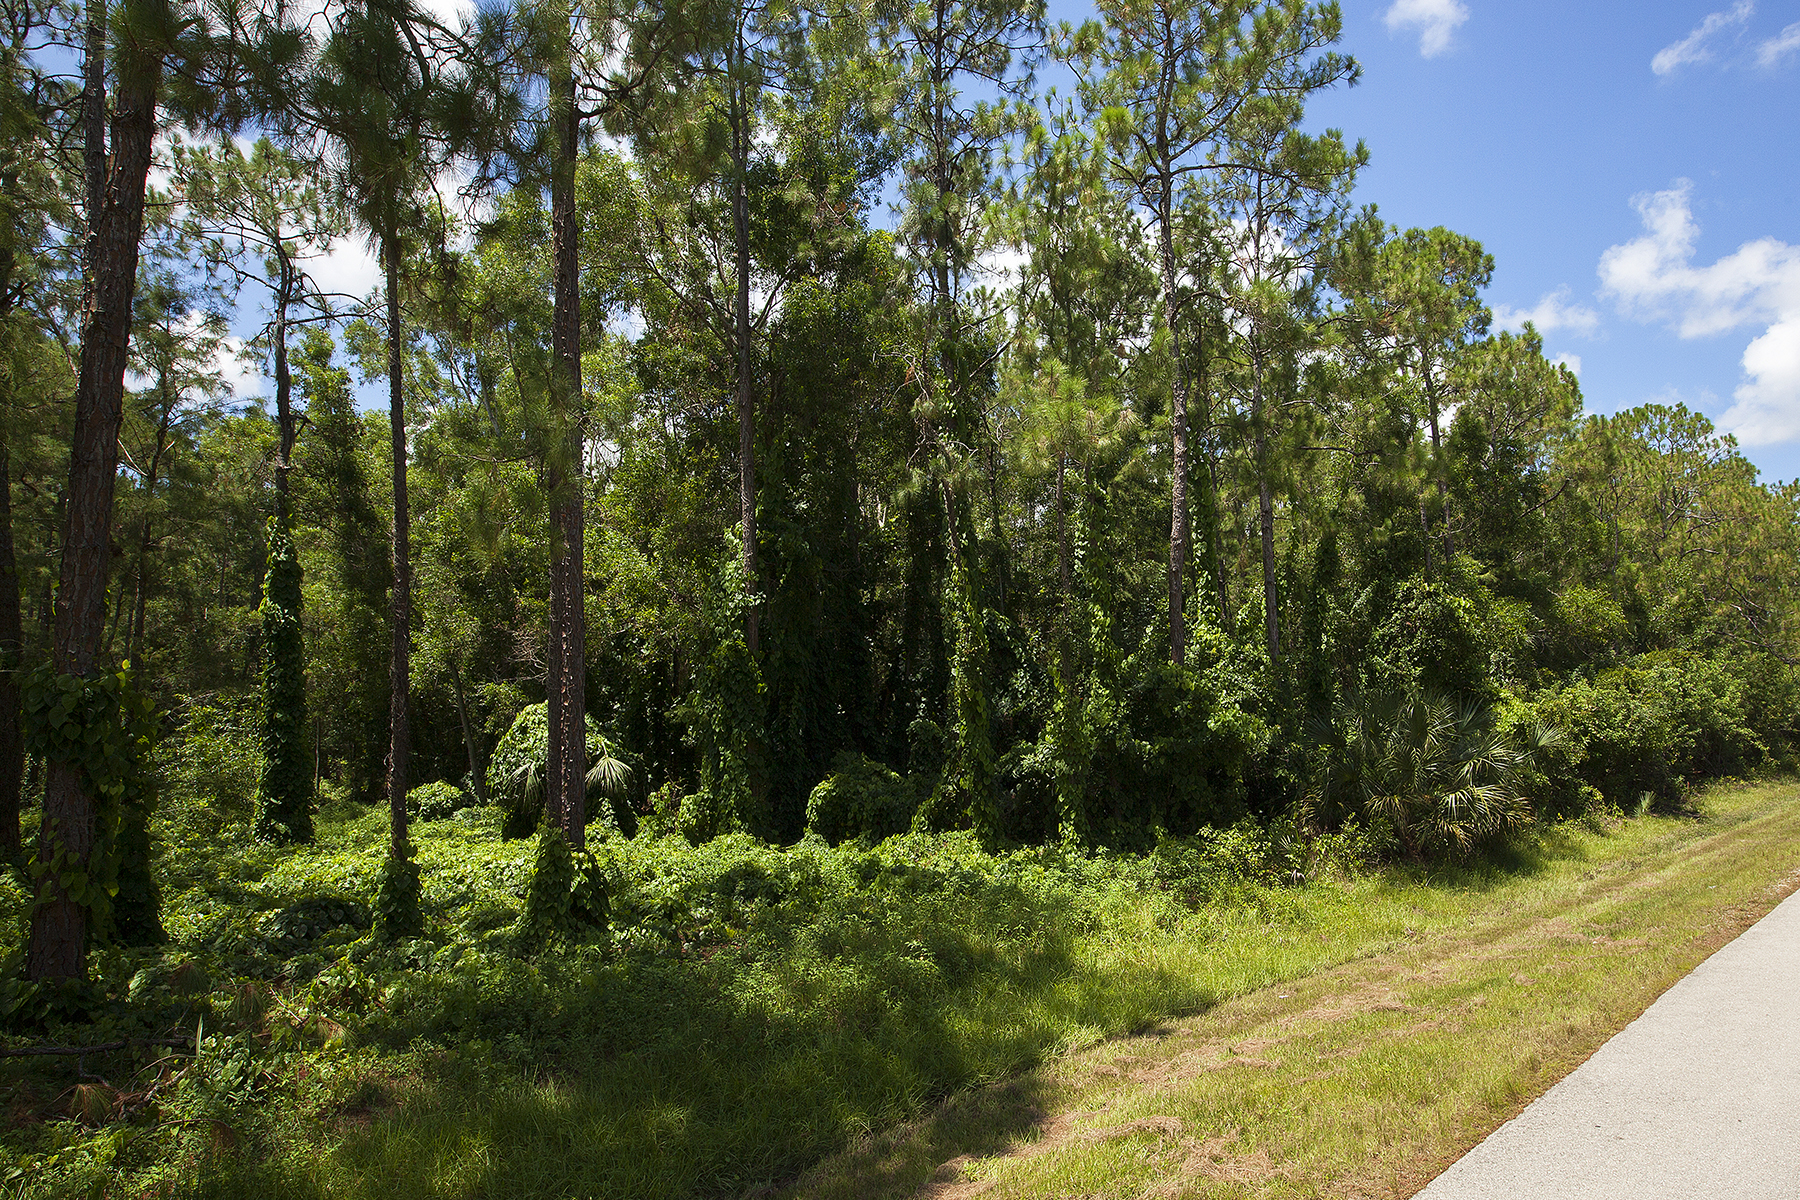 Land for Sale at 6658 Sandalwood Ln , Naples, FL 34109 6658 Sandalwood Ln Naples, Florida 34109 United States